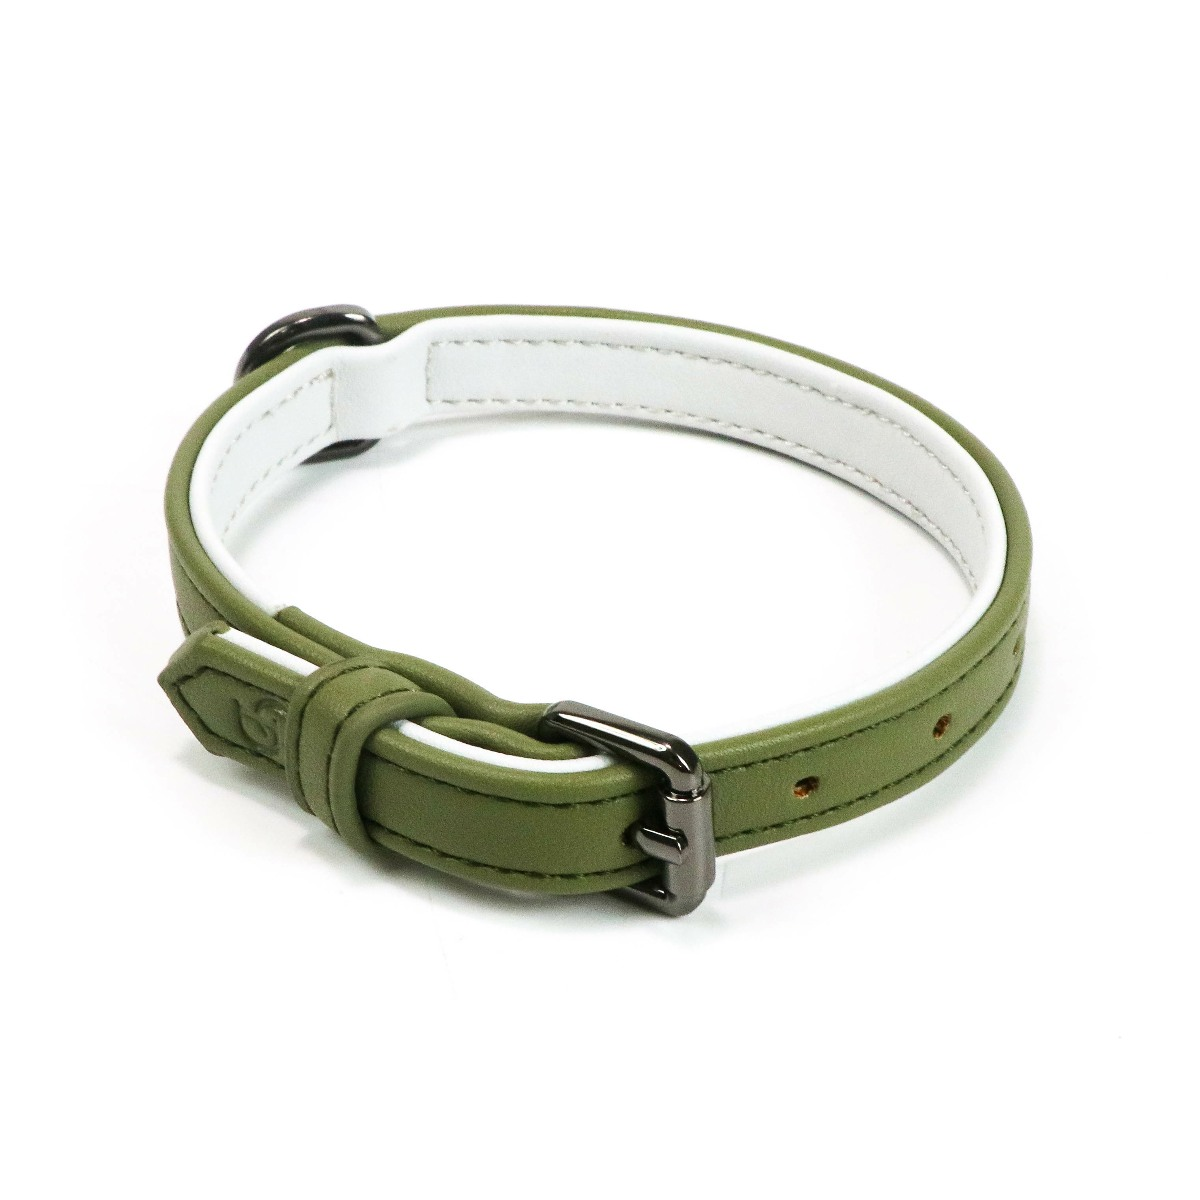 Cambridge collar in Olive